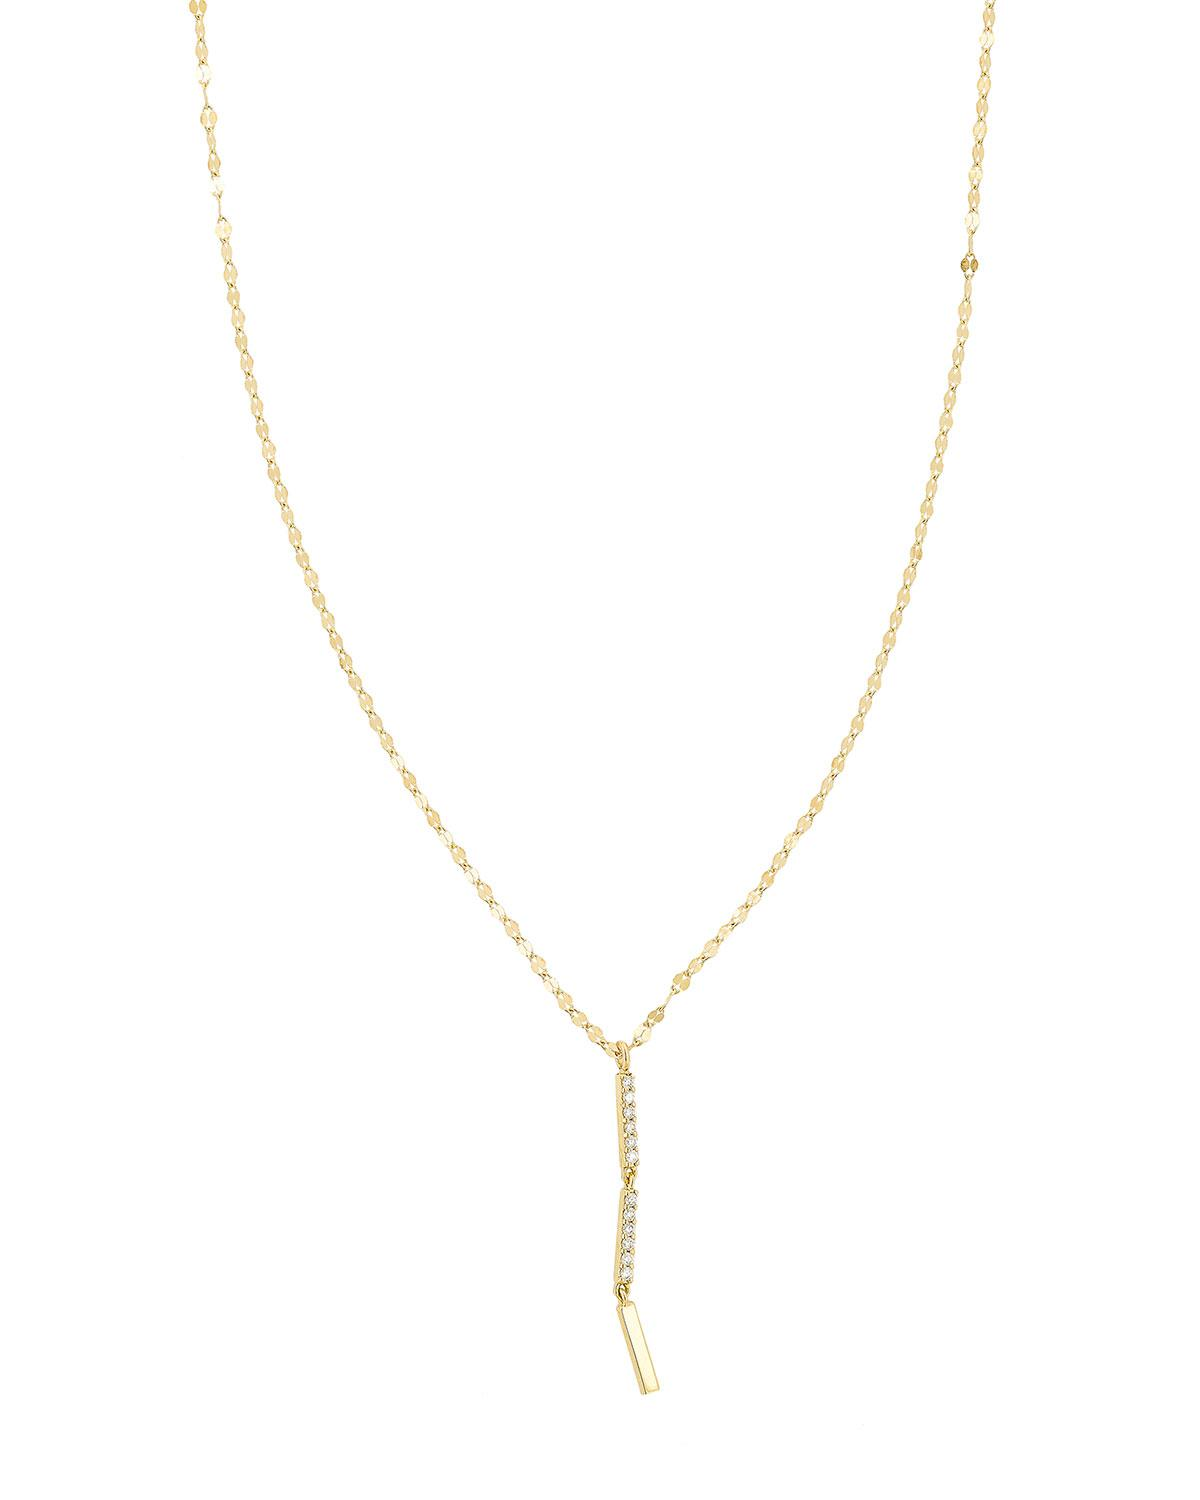 Lana Jewelry Flawless Vol. 6 14K Long Diamond Lariat Necklace uFXOO